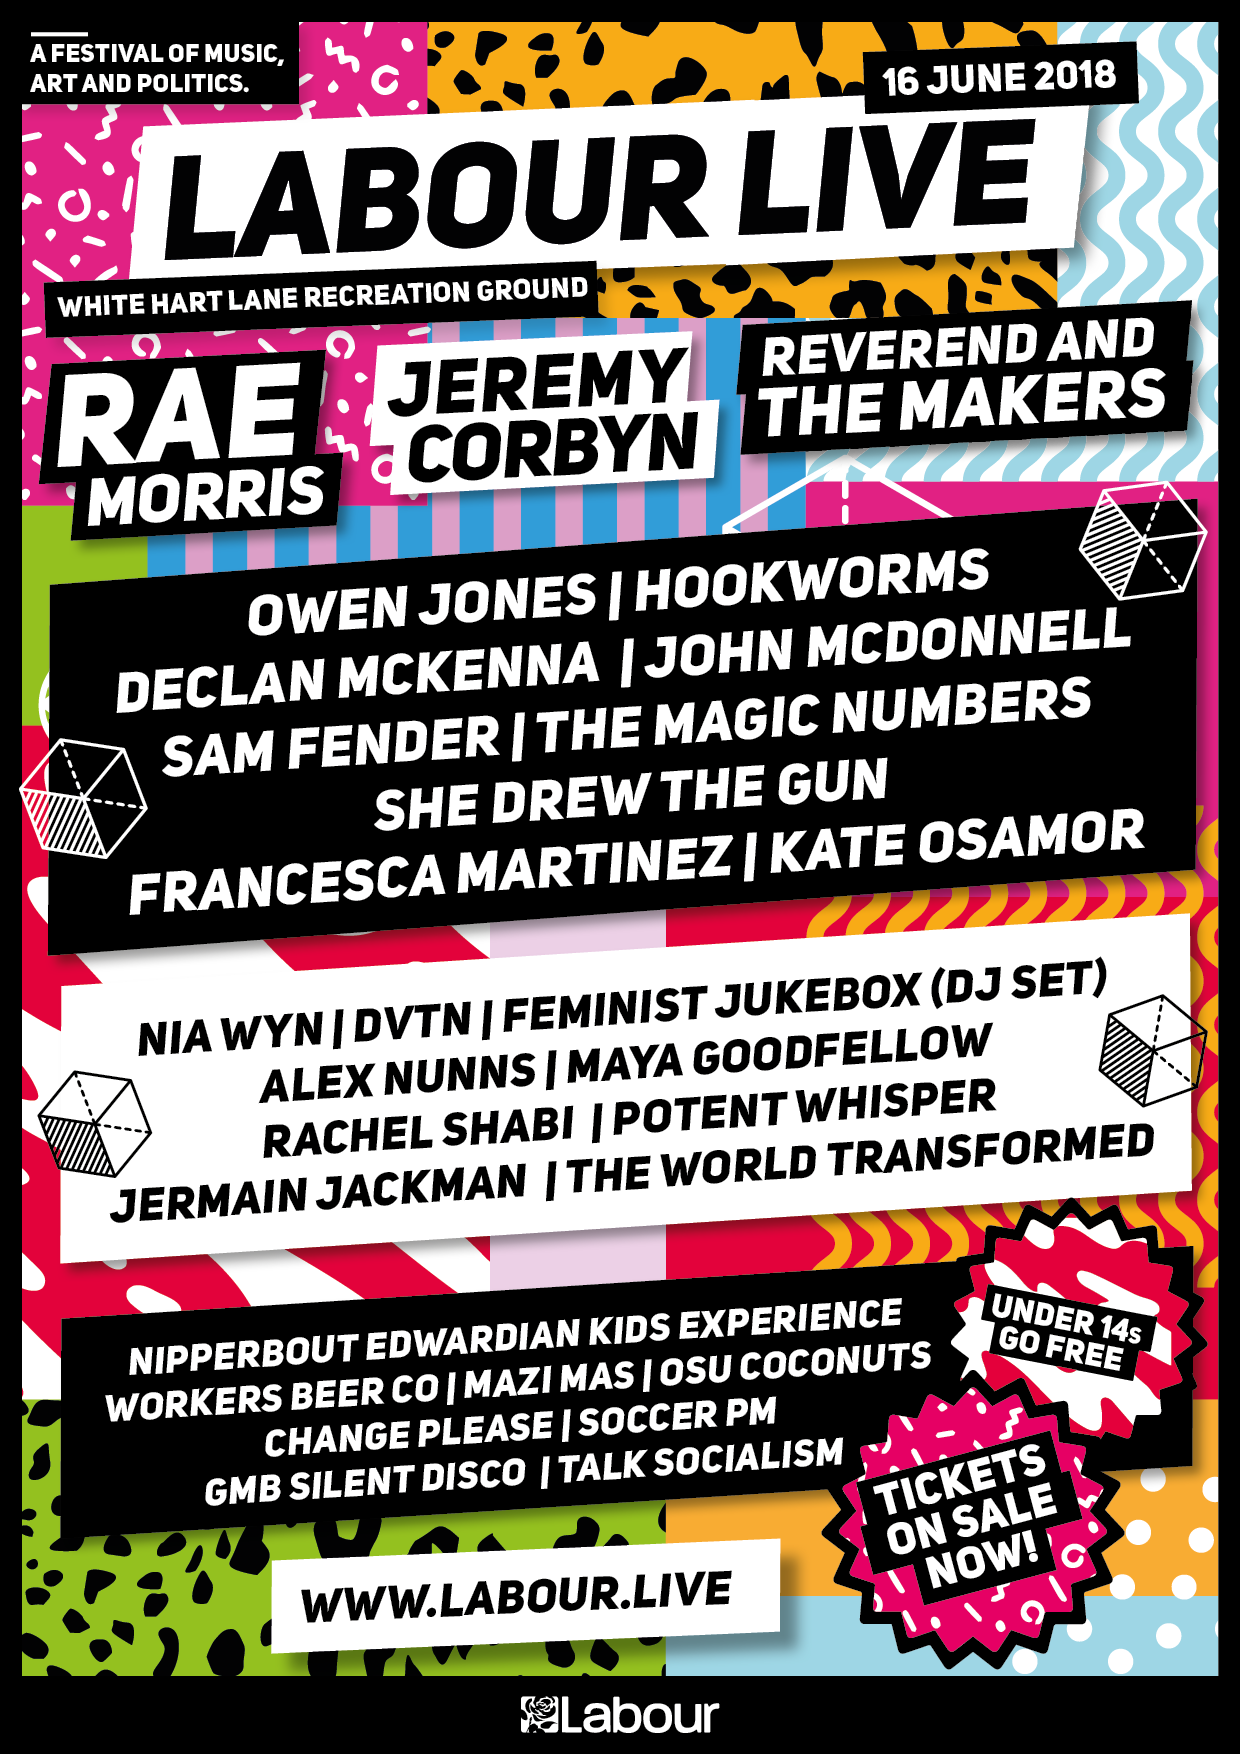 #LabourLive is less than 2 weeks away! Have you got your tickets yet? �� https://t.co/KKiS3MYvpH https://t.co/p9tSOkiupf